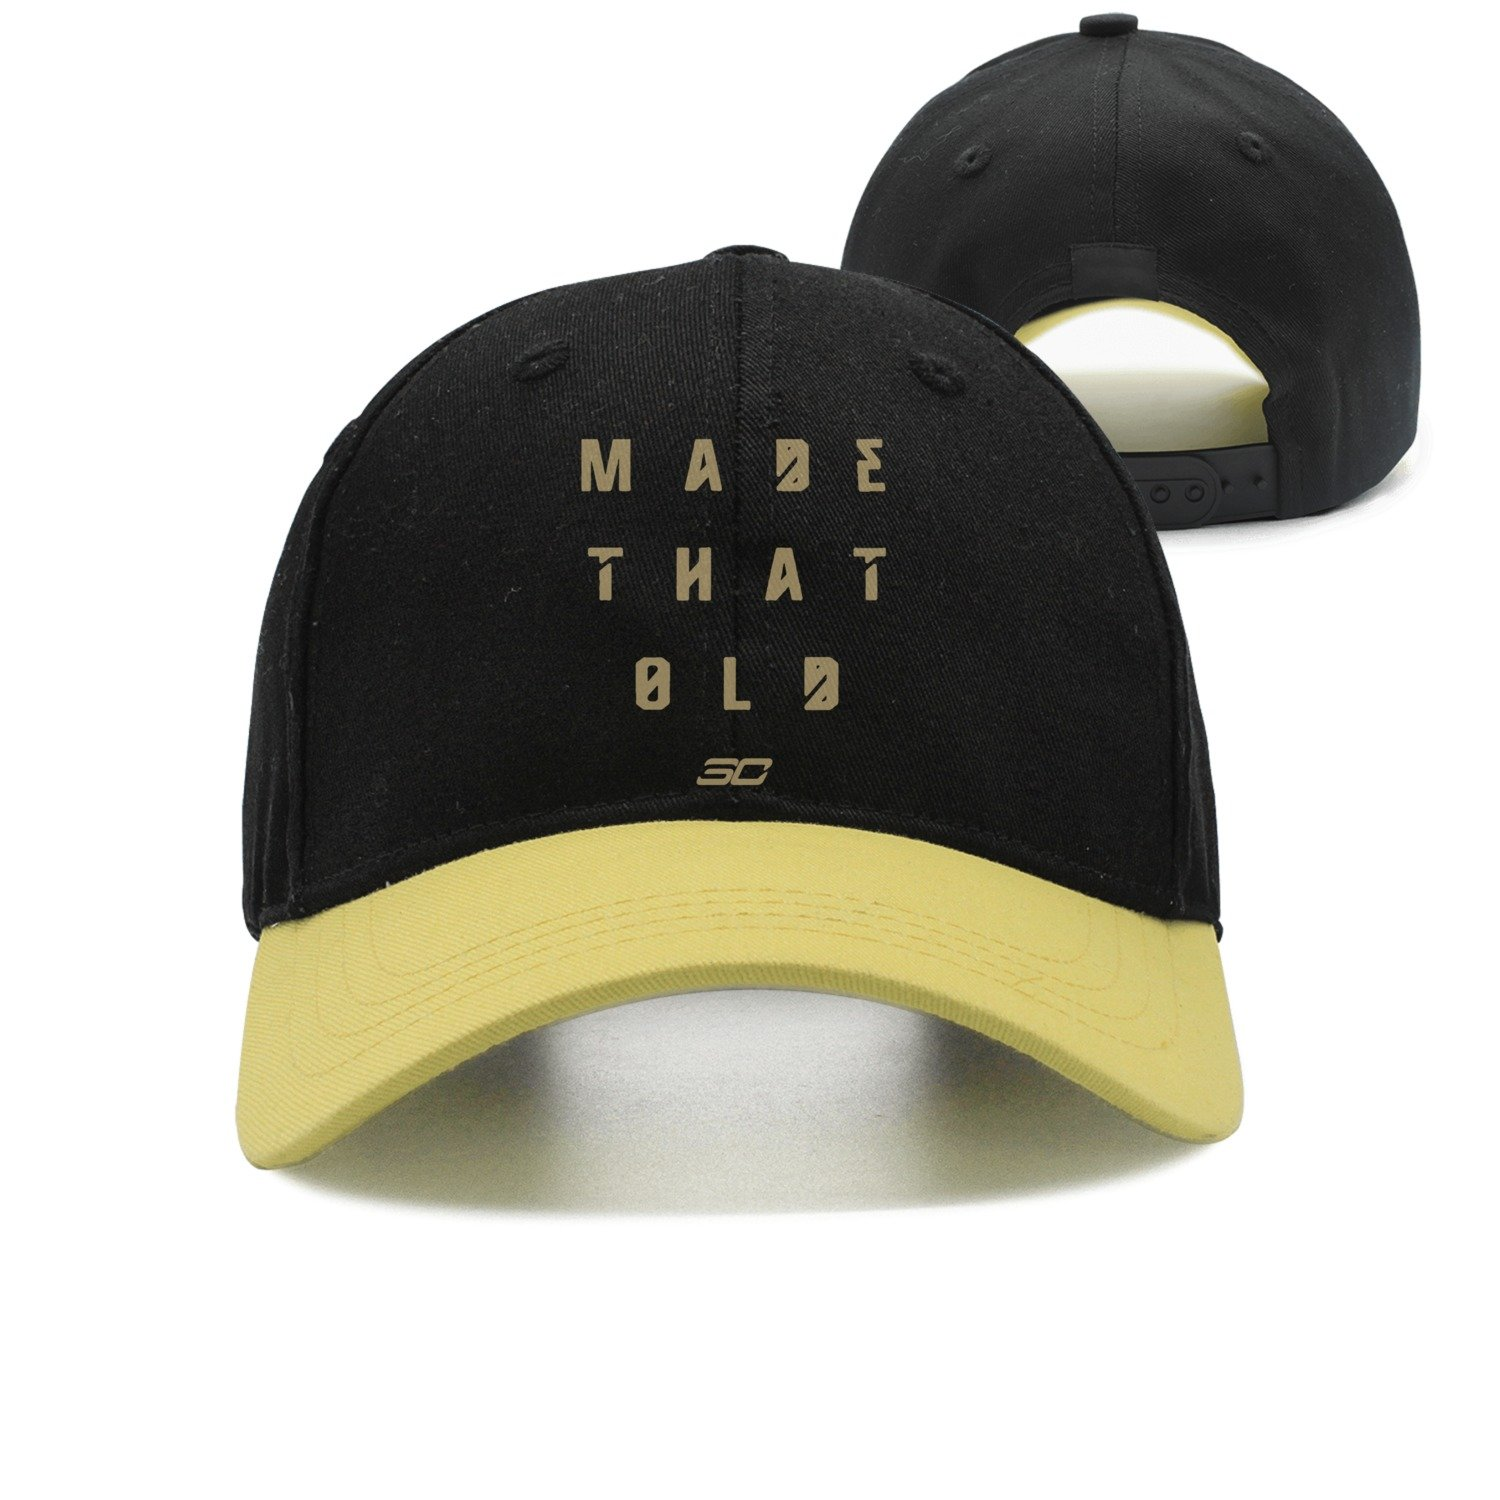 Qqppii Made That Old 30 2018 Champions Parade Cotton Womens Mens Fitted Hats